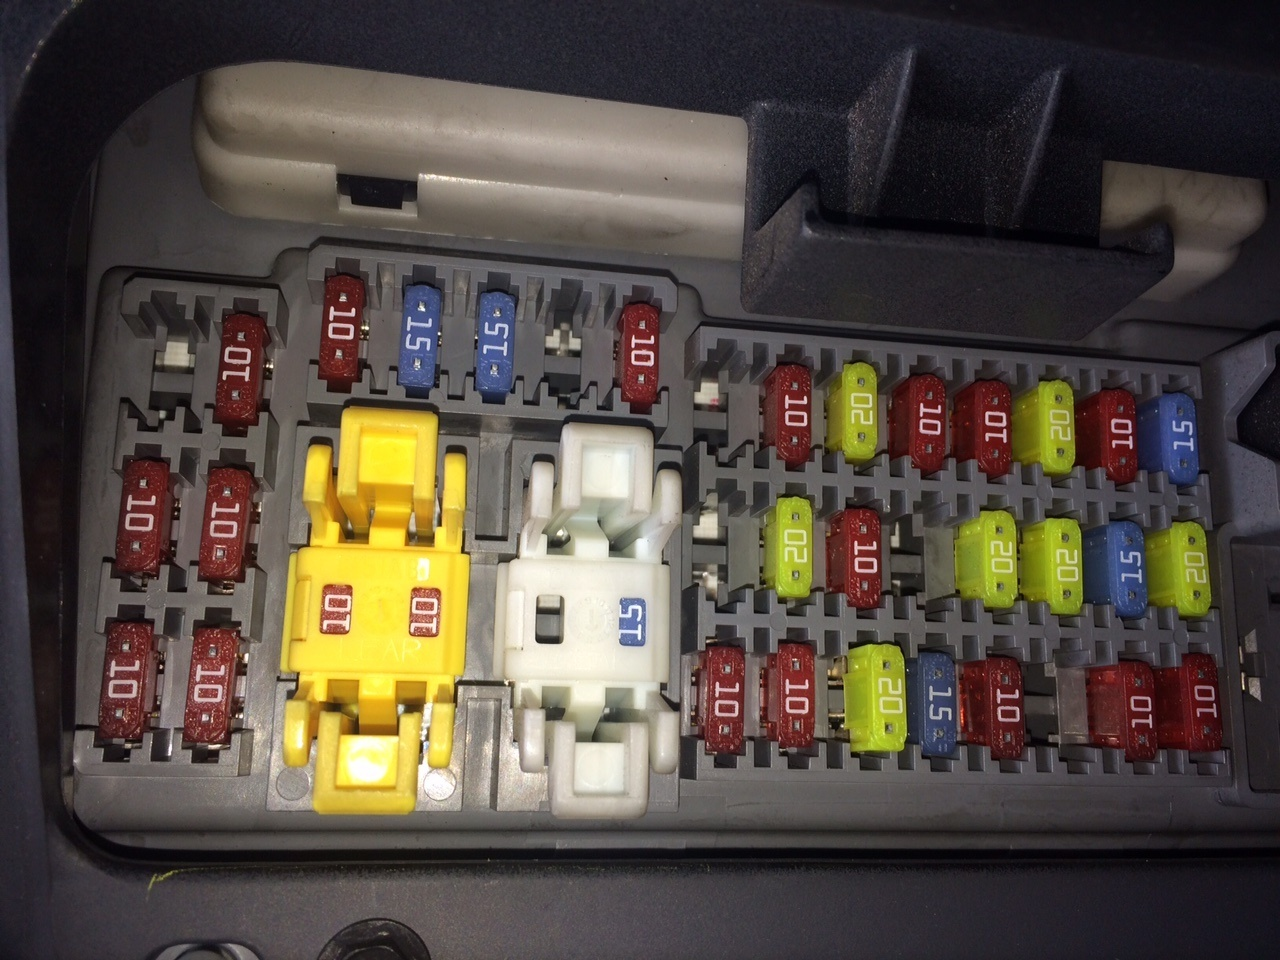 Jeep Liberty Fuse Box 2004 Simple Guide About Wiring Diagram 04 Passat Tdi Questions Where Is For 2003 Driver Rh Cargurus Com Location